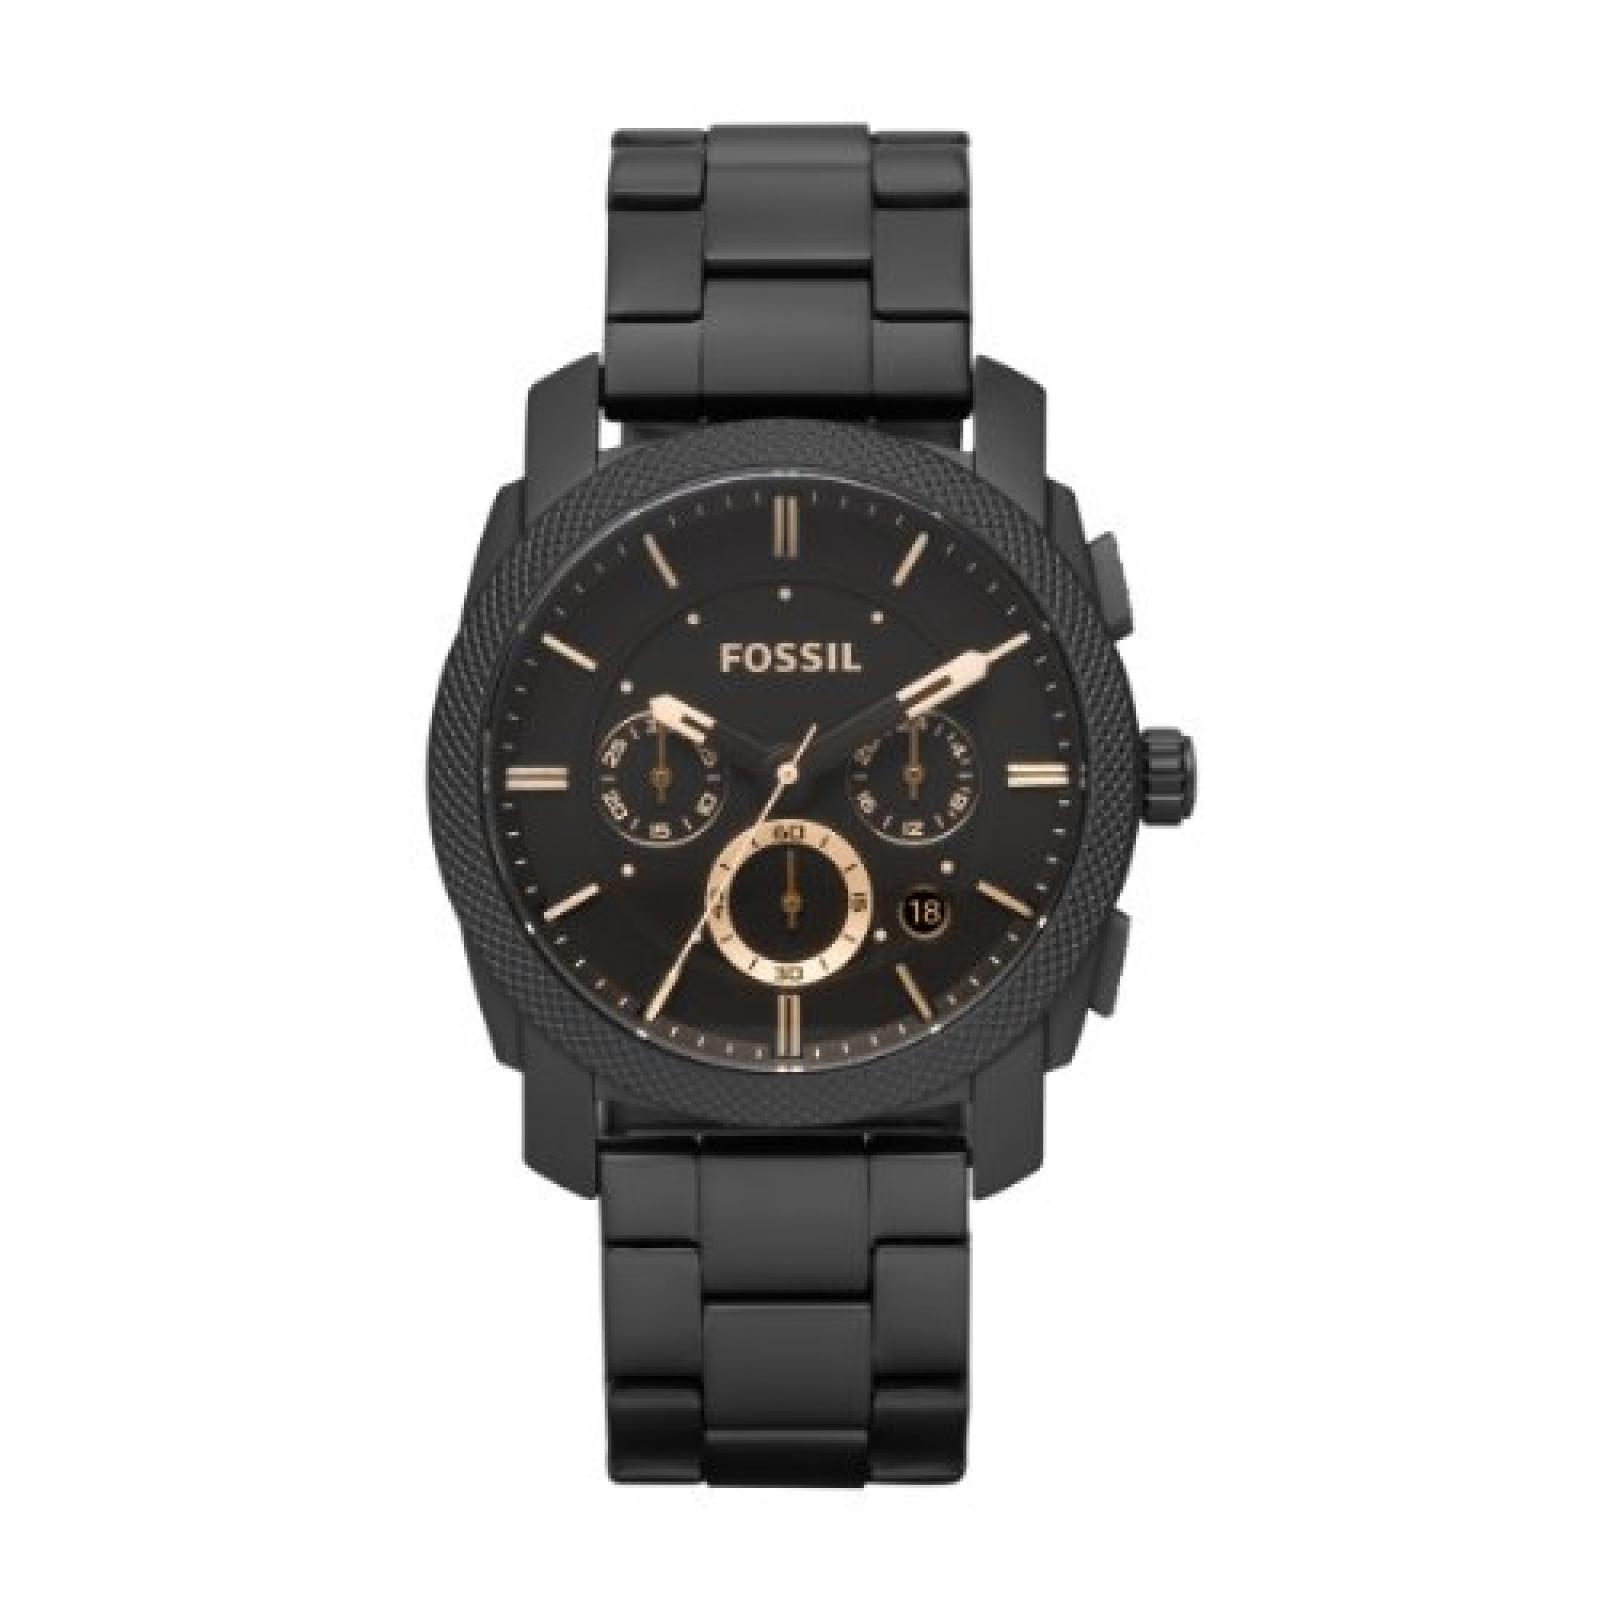 Fossil Herren-Armbanduhr Dress Analog Quarz FS4682